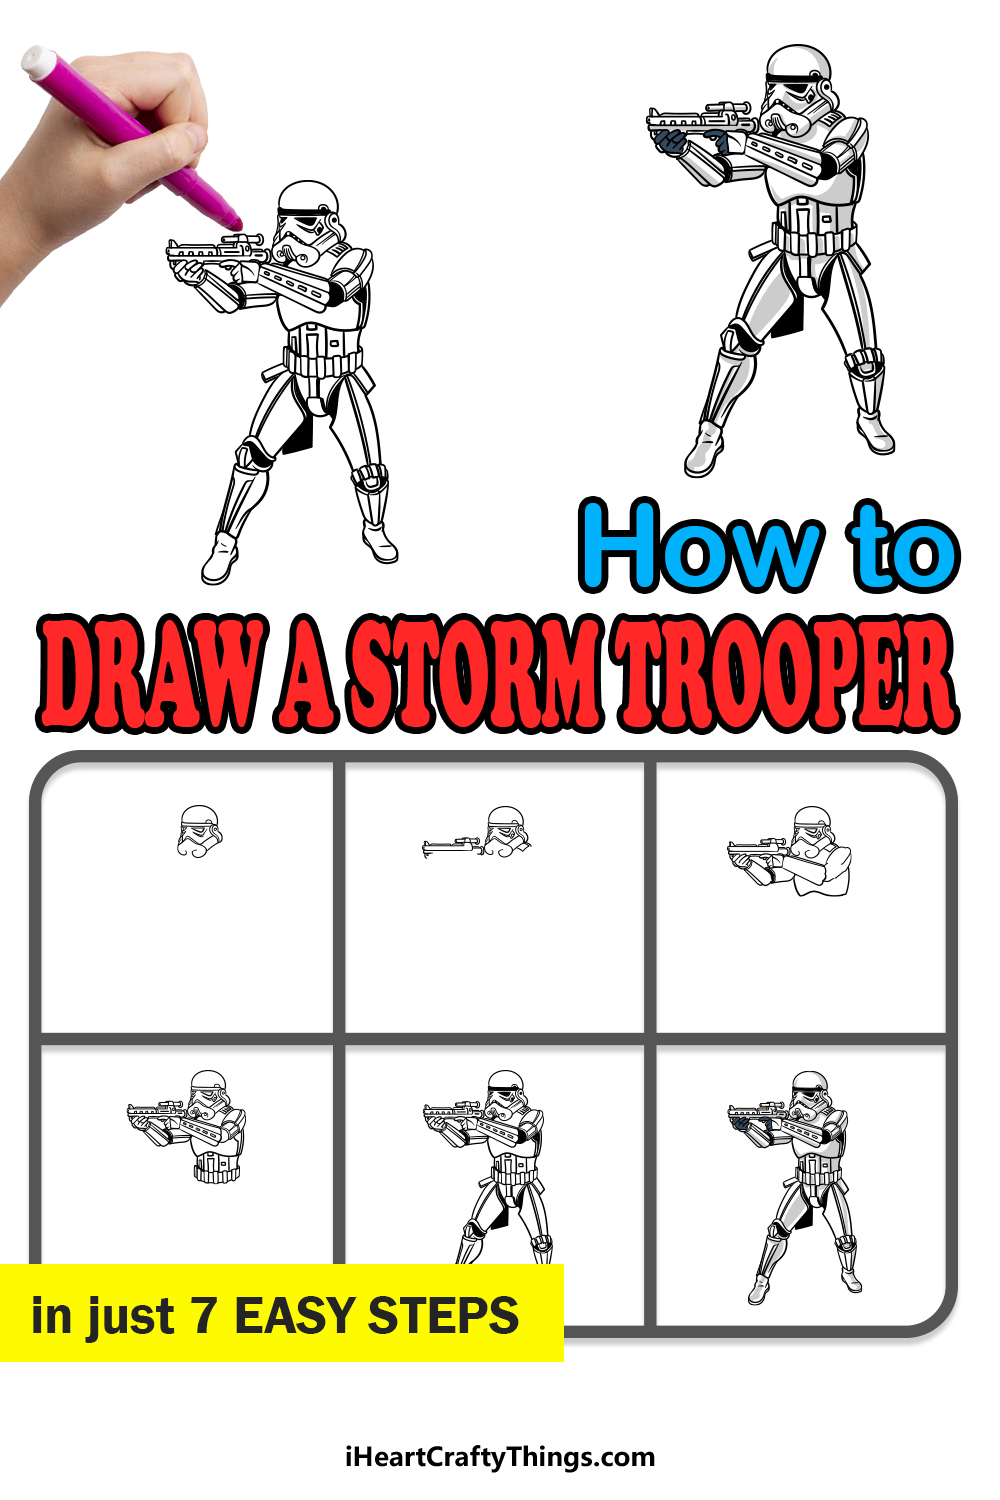 how to draw a stormtrooper in 7 easy steps